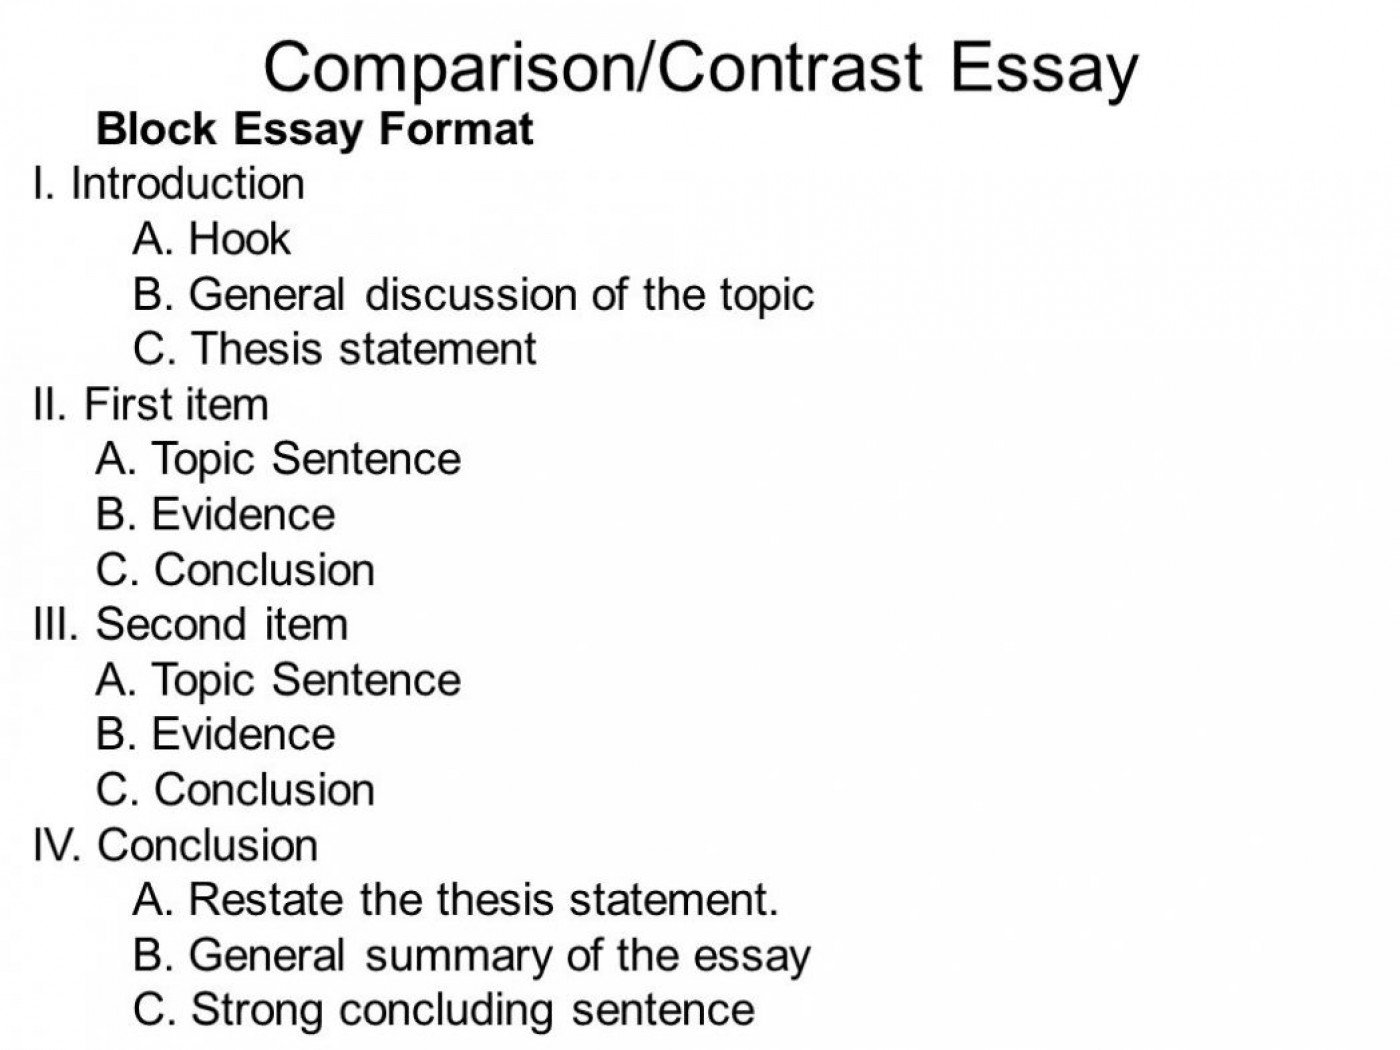 006 Essay Example Introduction Outline Thesis For Compare Contrast Writing Portfolio With Mr Butner Informative Sli Extended Structure Paragraph Argumentative Stupendous Narrative 1400